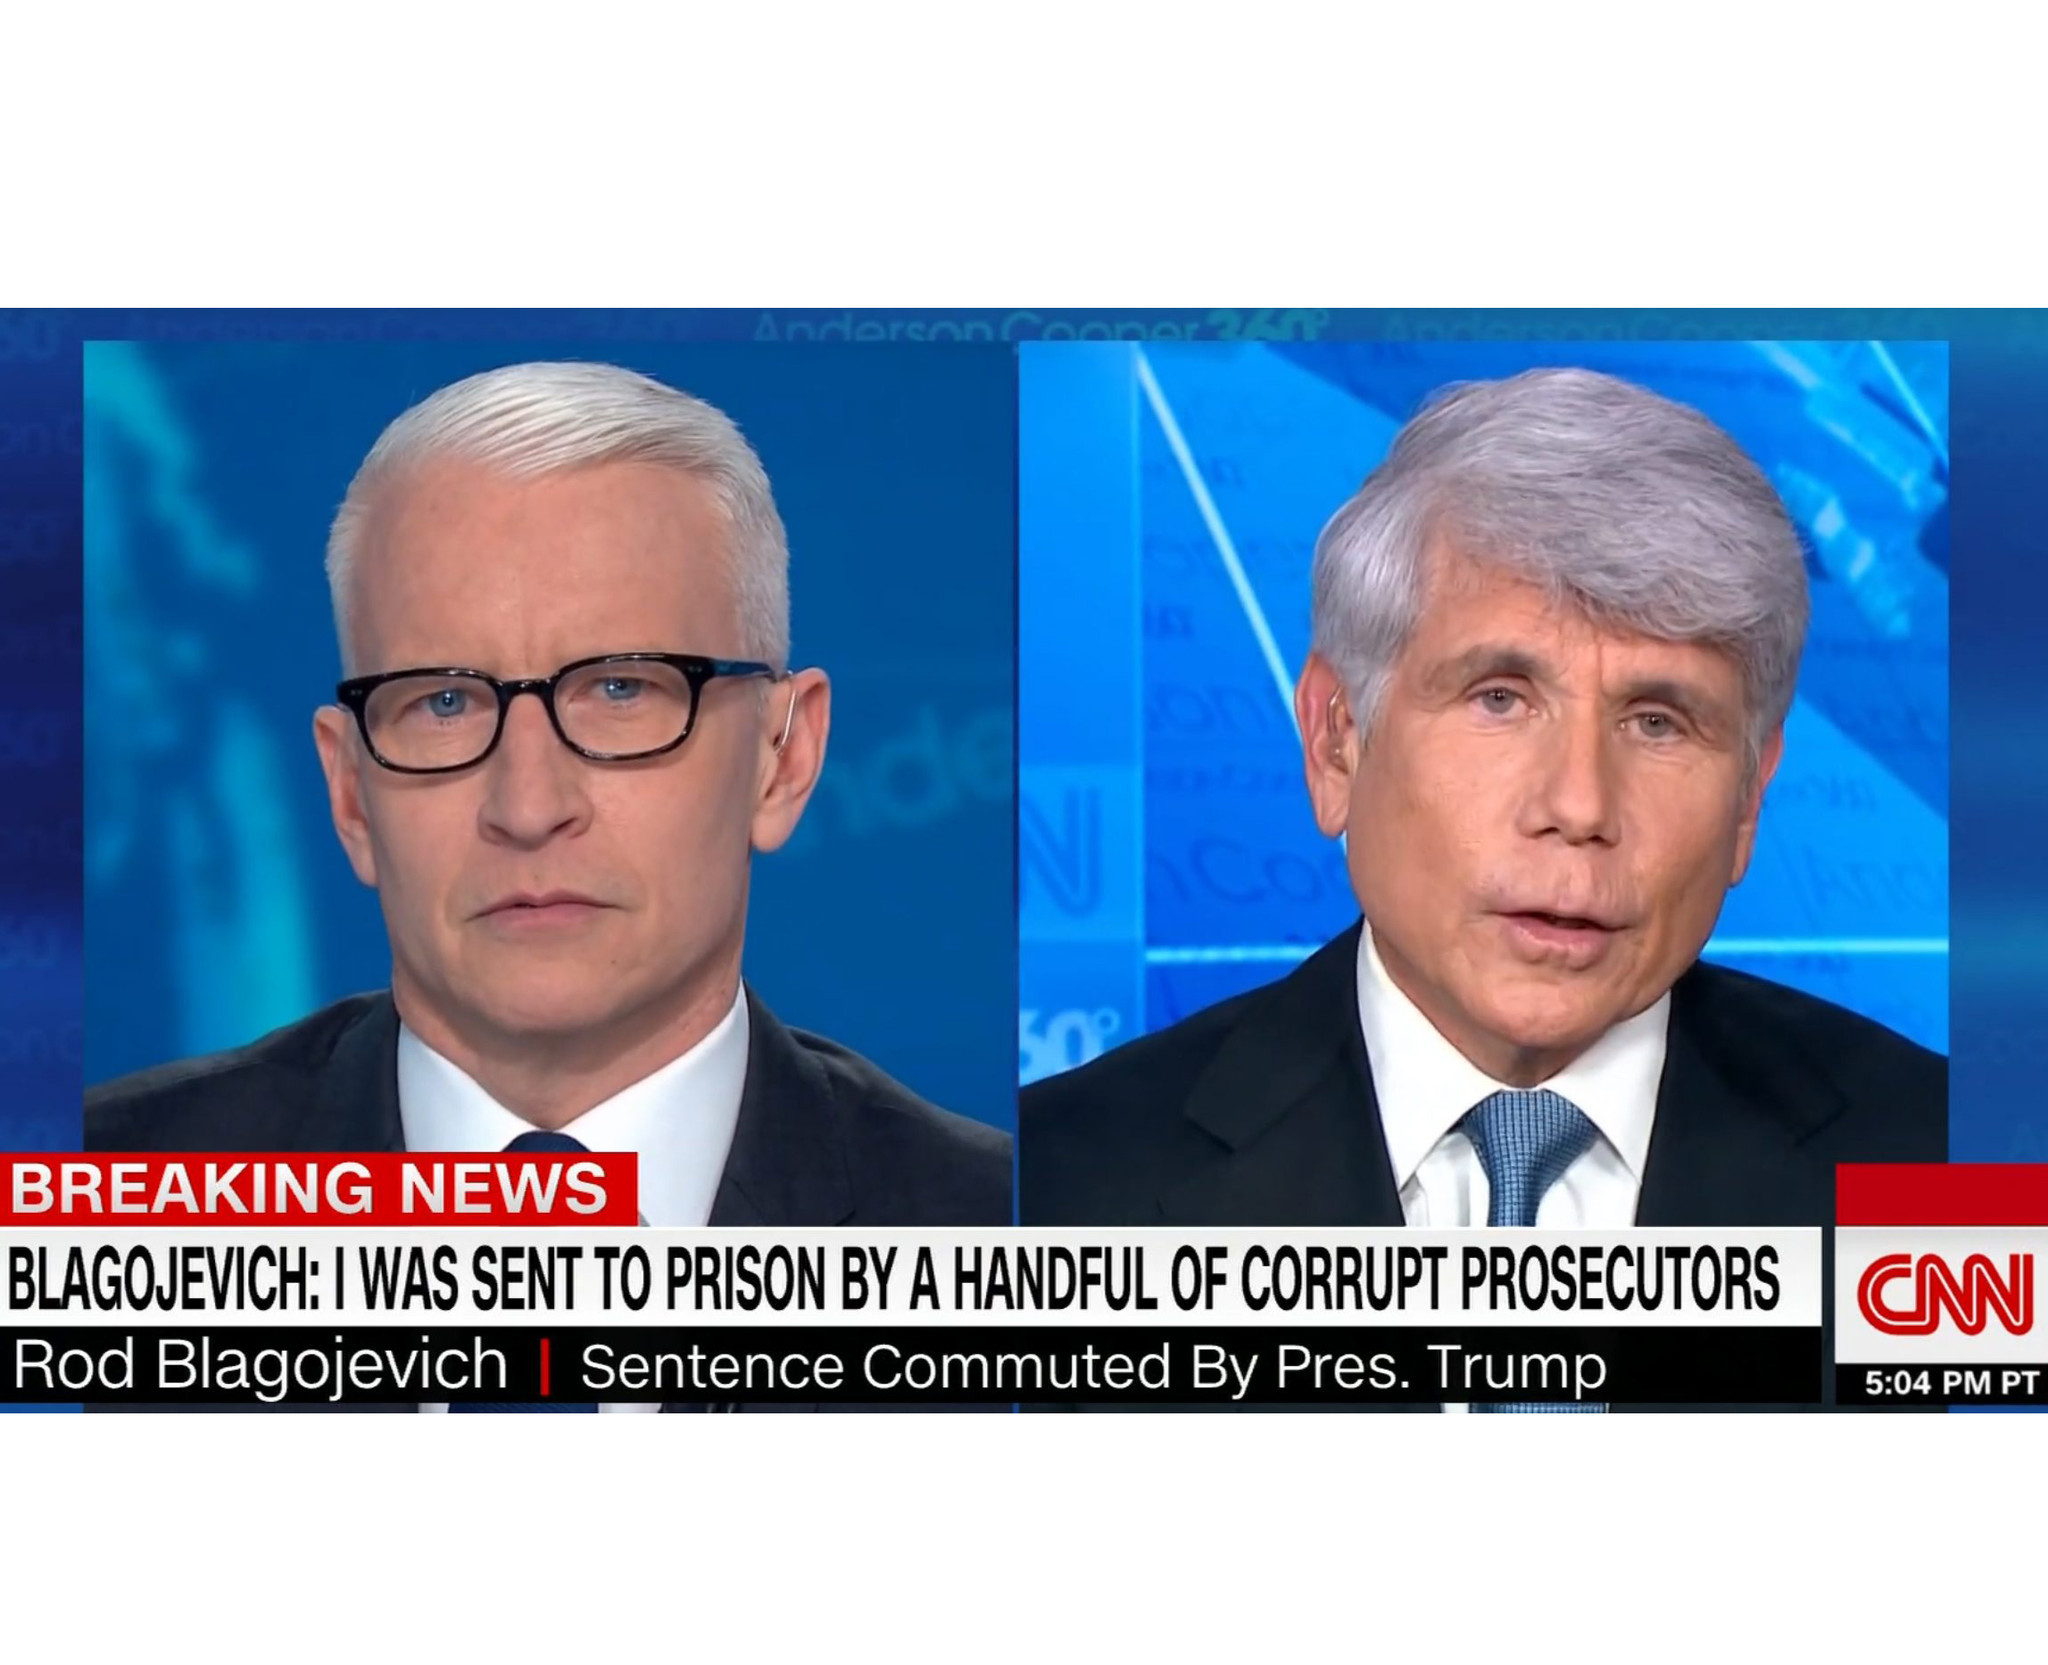 SEE IT: Anderson Cooper calls 'bull----' on several Rod Blagojevich claims